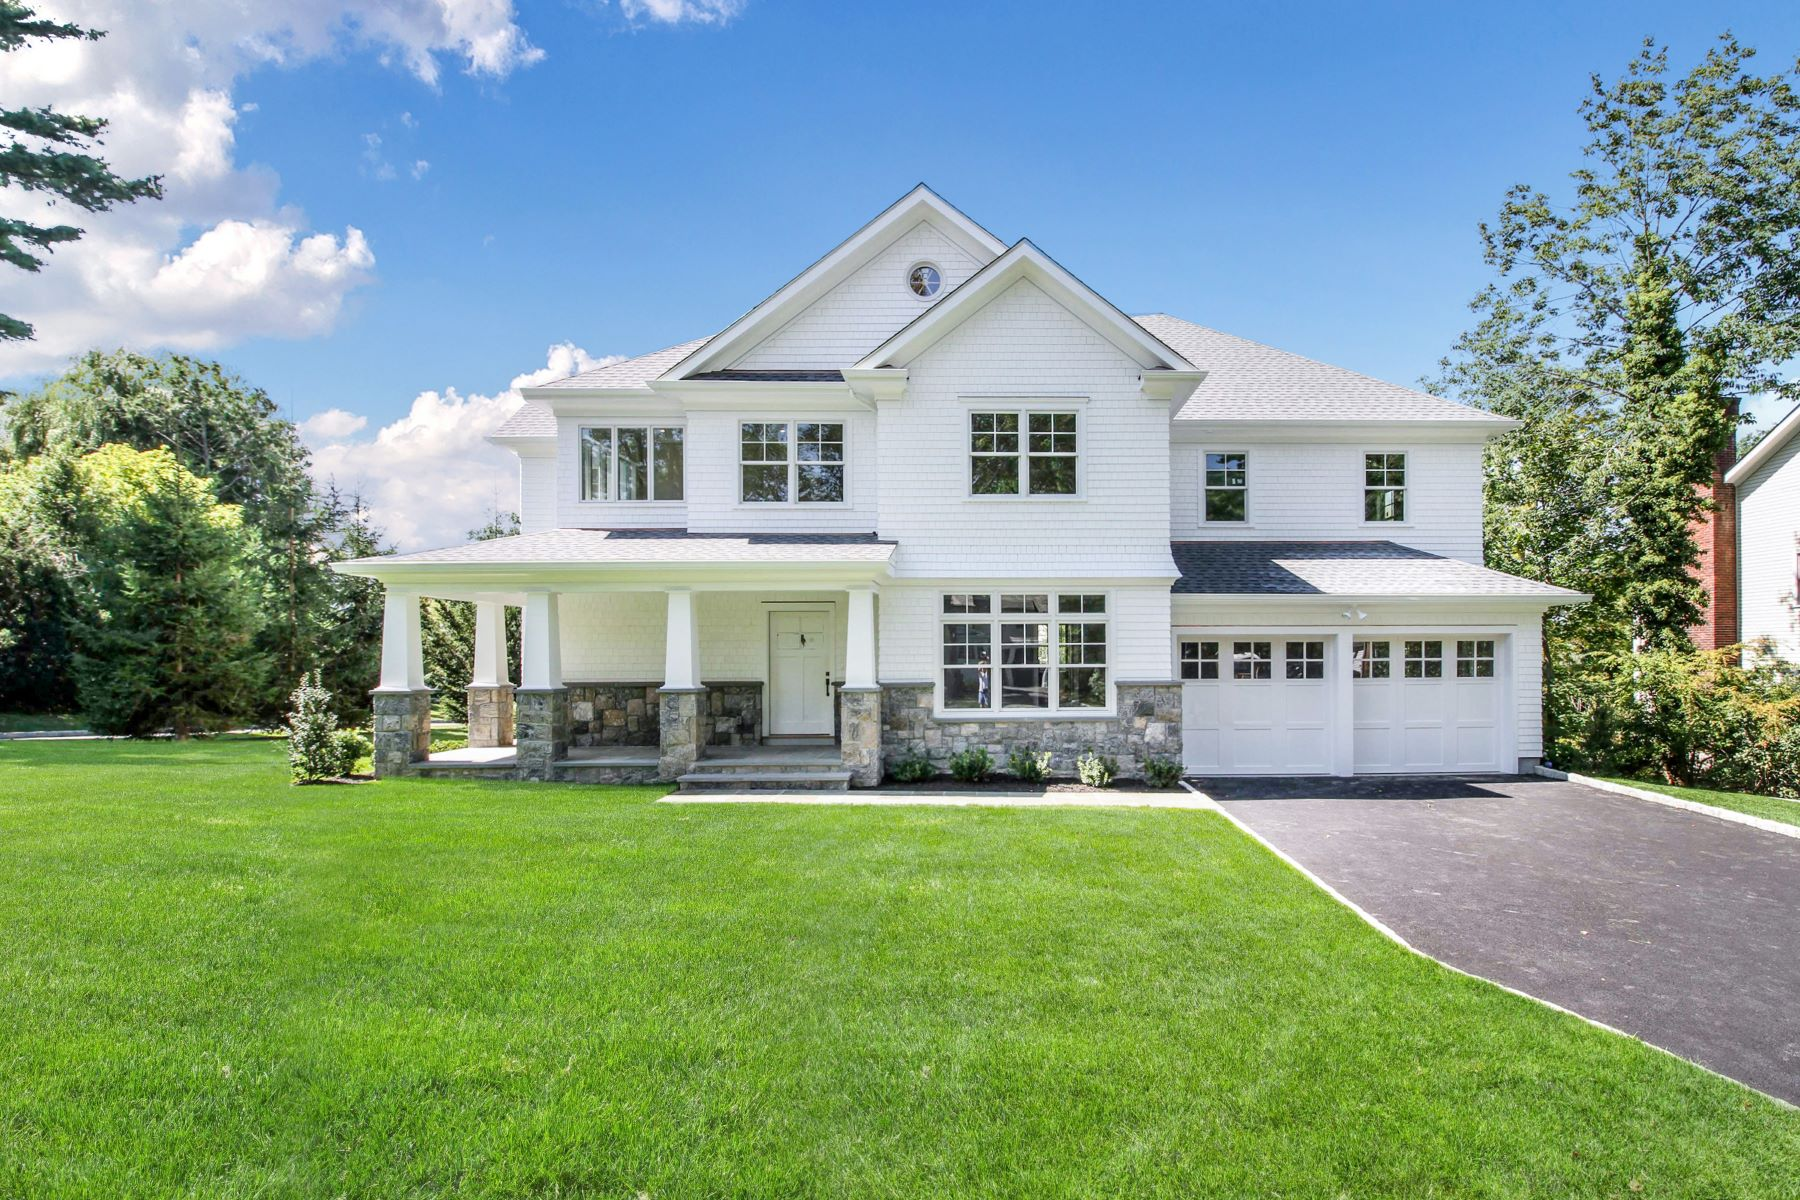 Single Family Homes por un Venta en Stunning New Construction in Exclusive Grange Estate Area of Scarsdale 26 Fairview Road Scarsdale, Nueva York 10583 Estados Unidos